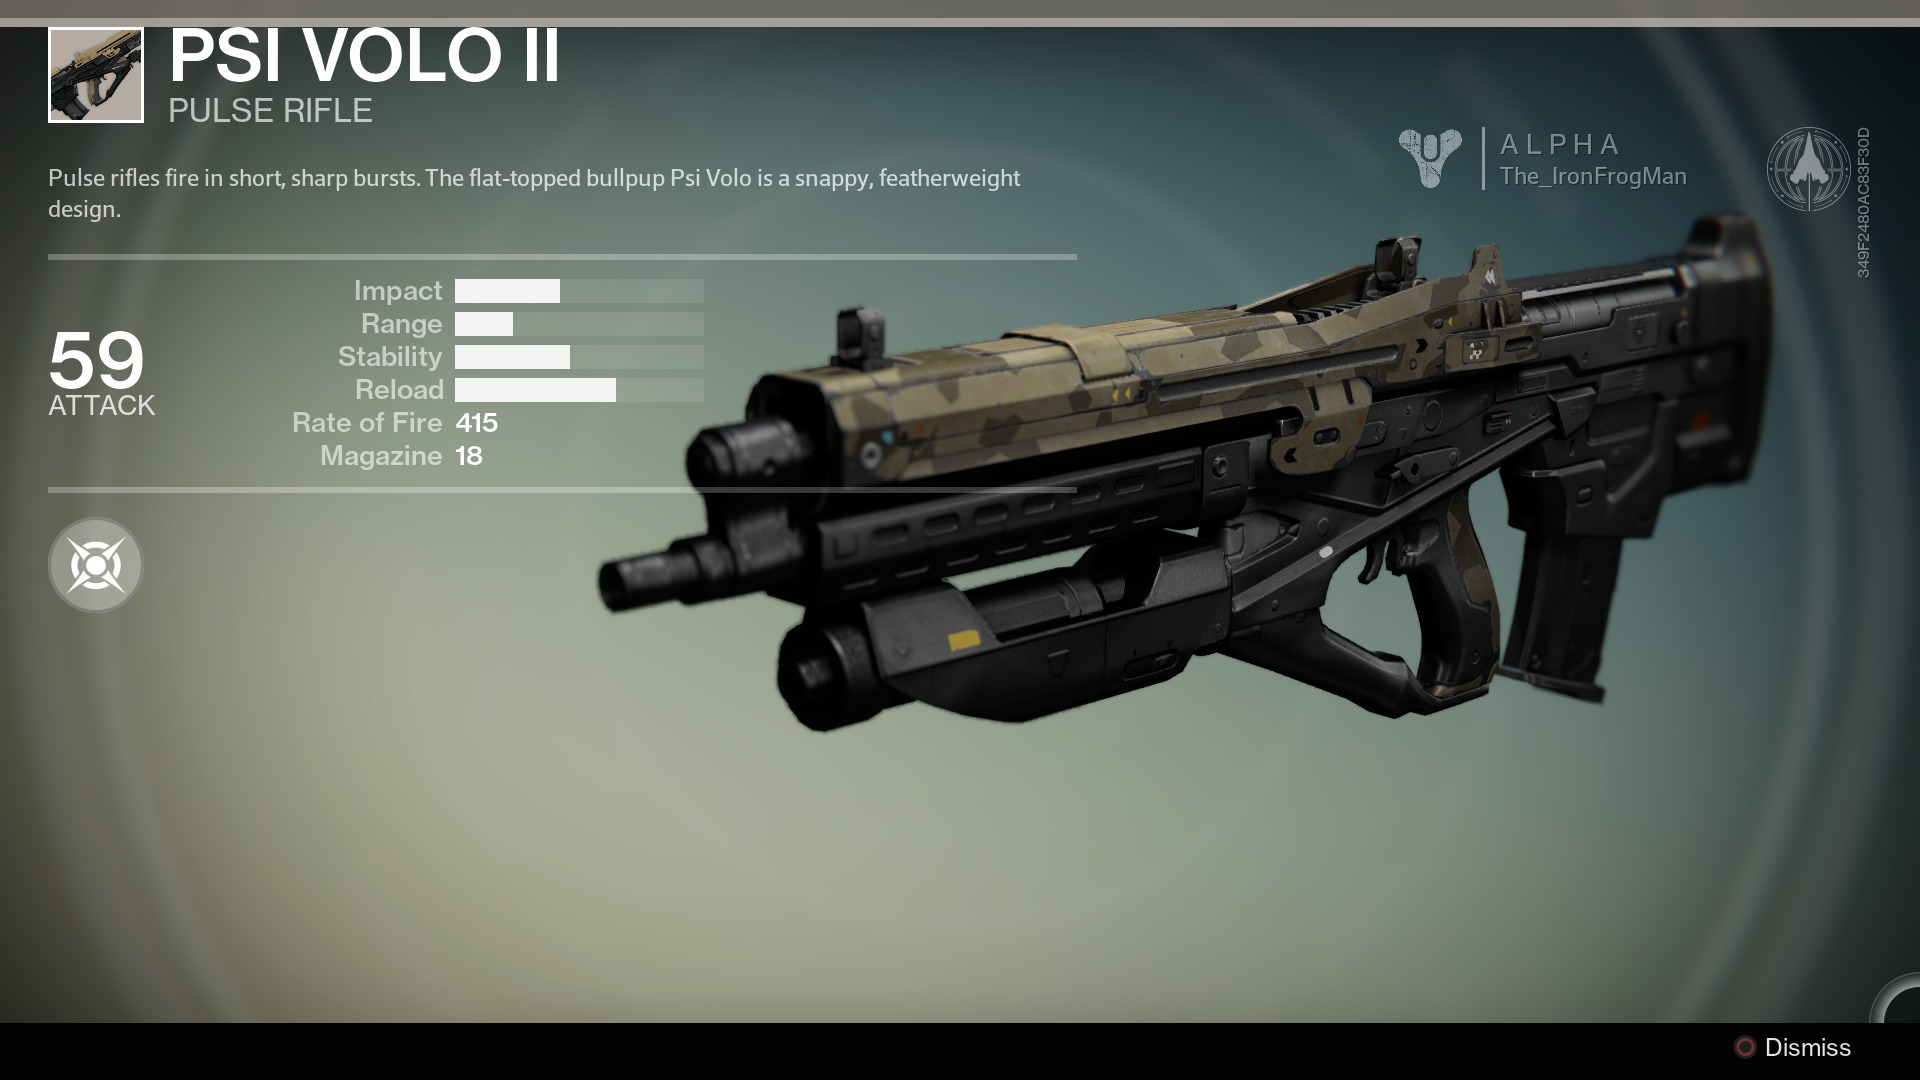 Auto rifle or Pulse rifle? - Destiny Message Board for ...